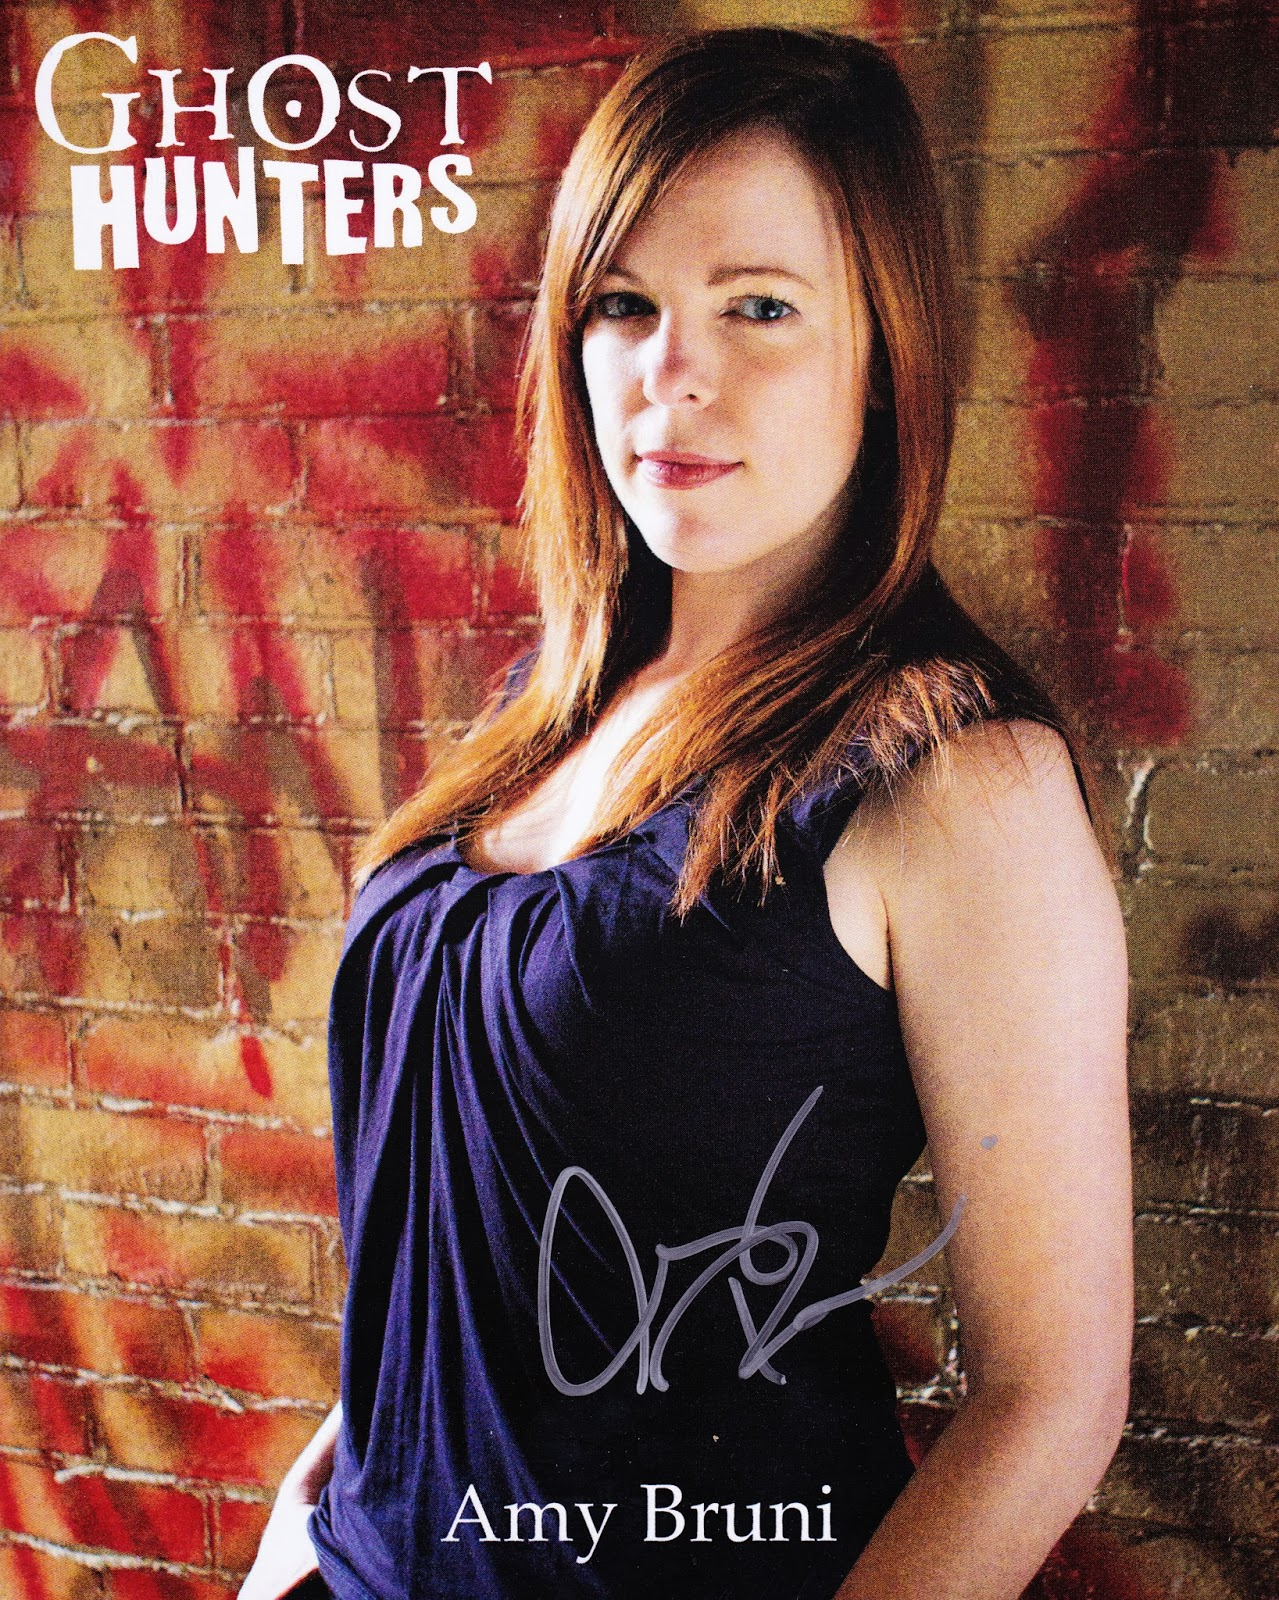 Amy Bruni Wizardworld 2013 Ghosthunters on december 2013 winter weather